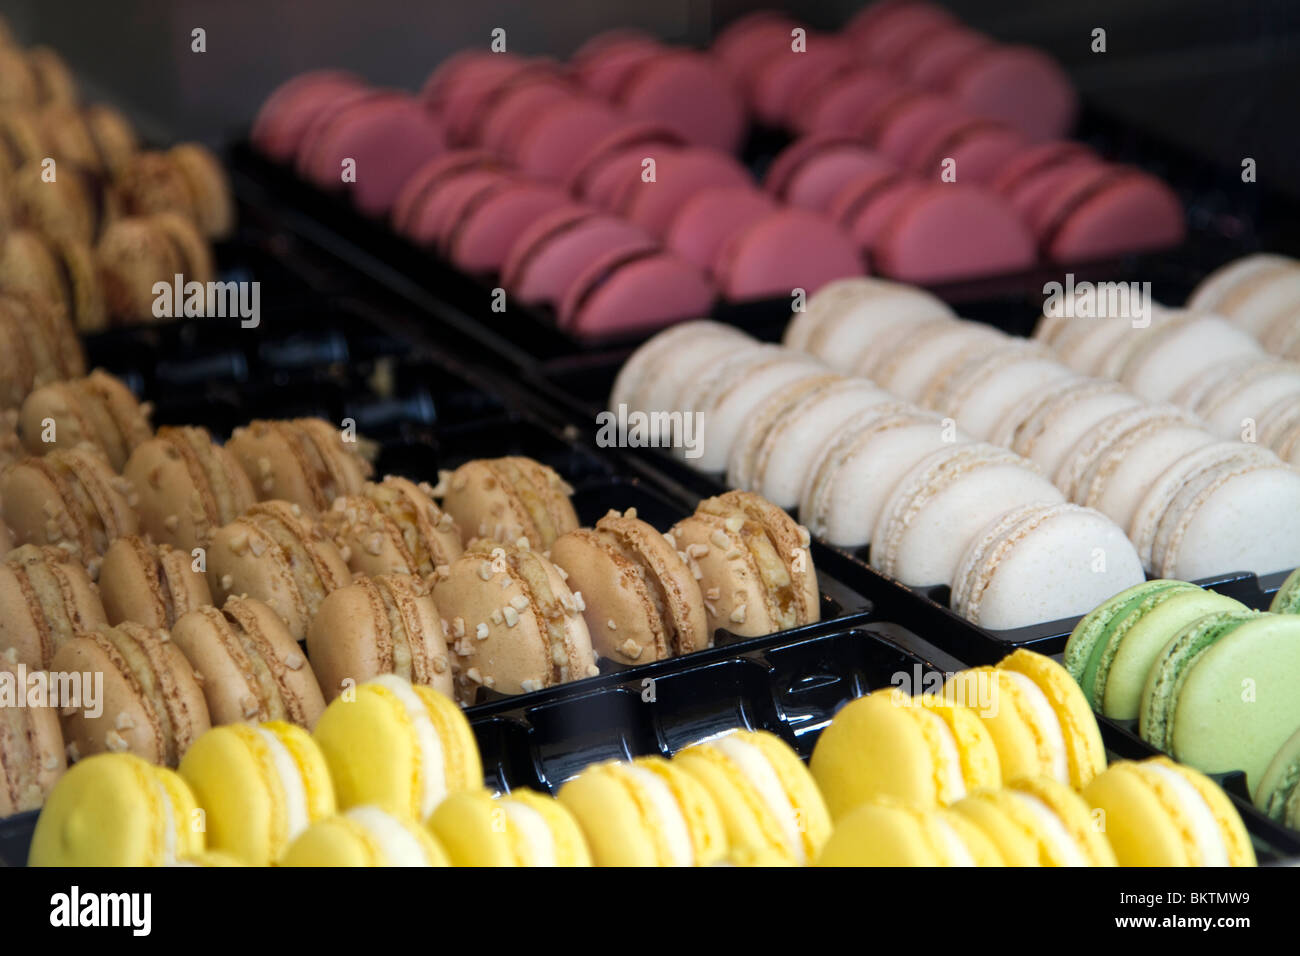 Macaron for sale in a Patisserie in Marais district, Paris - Stock Image